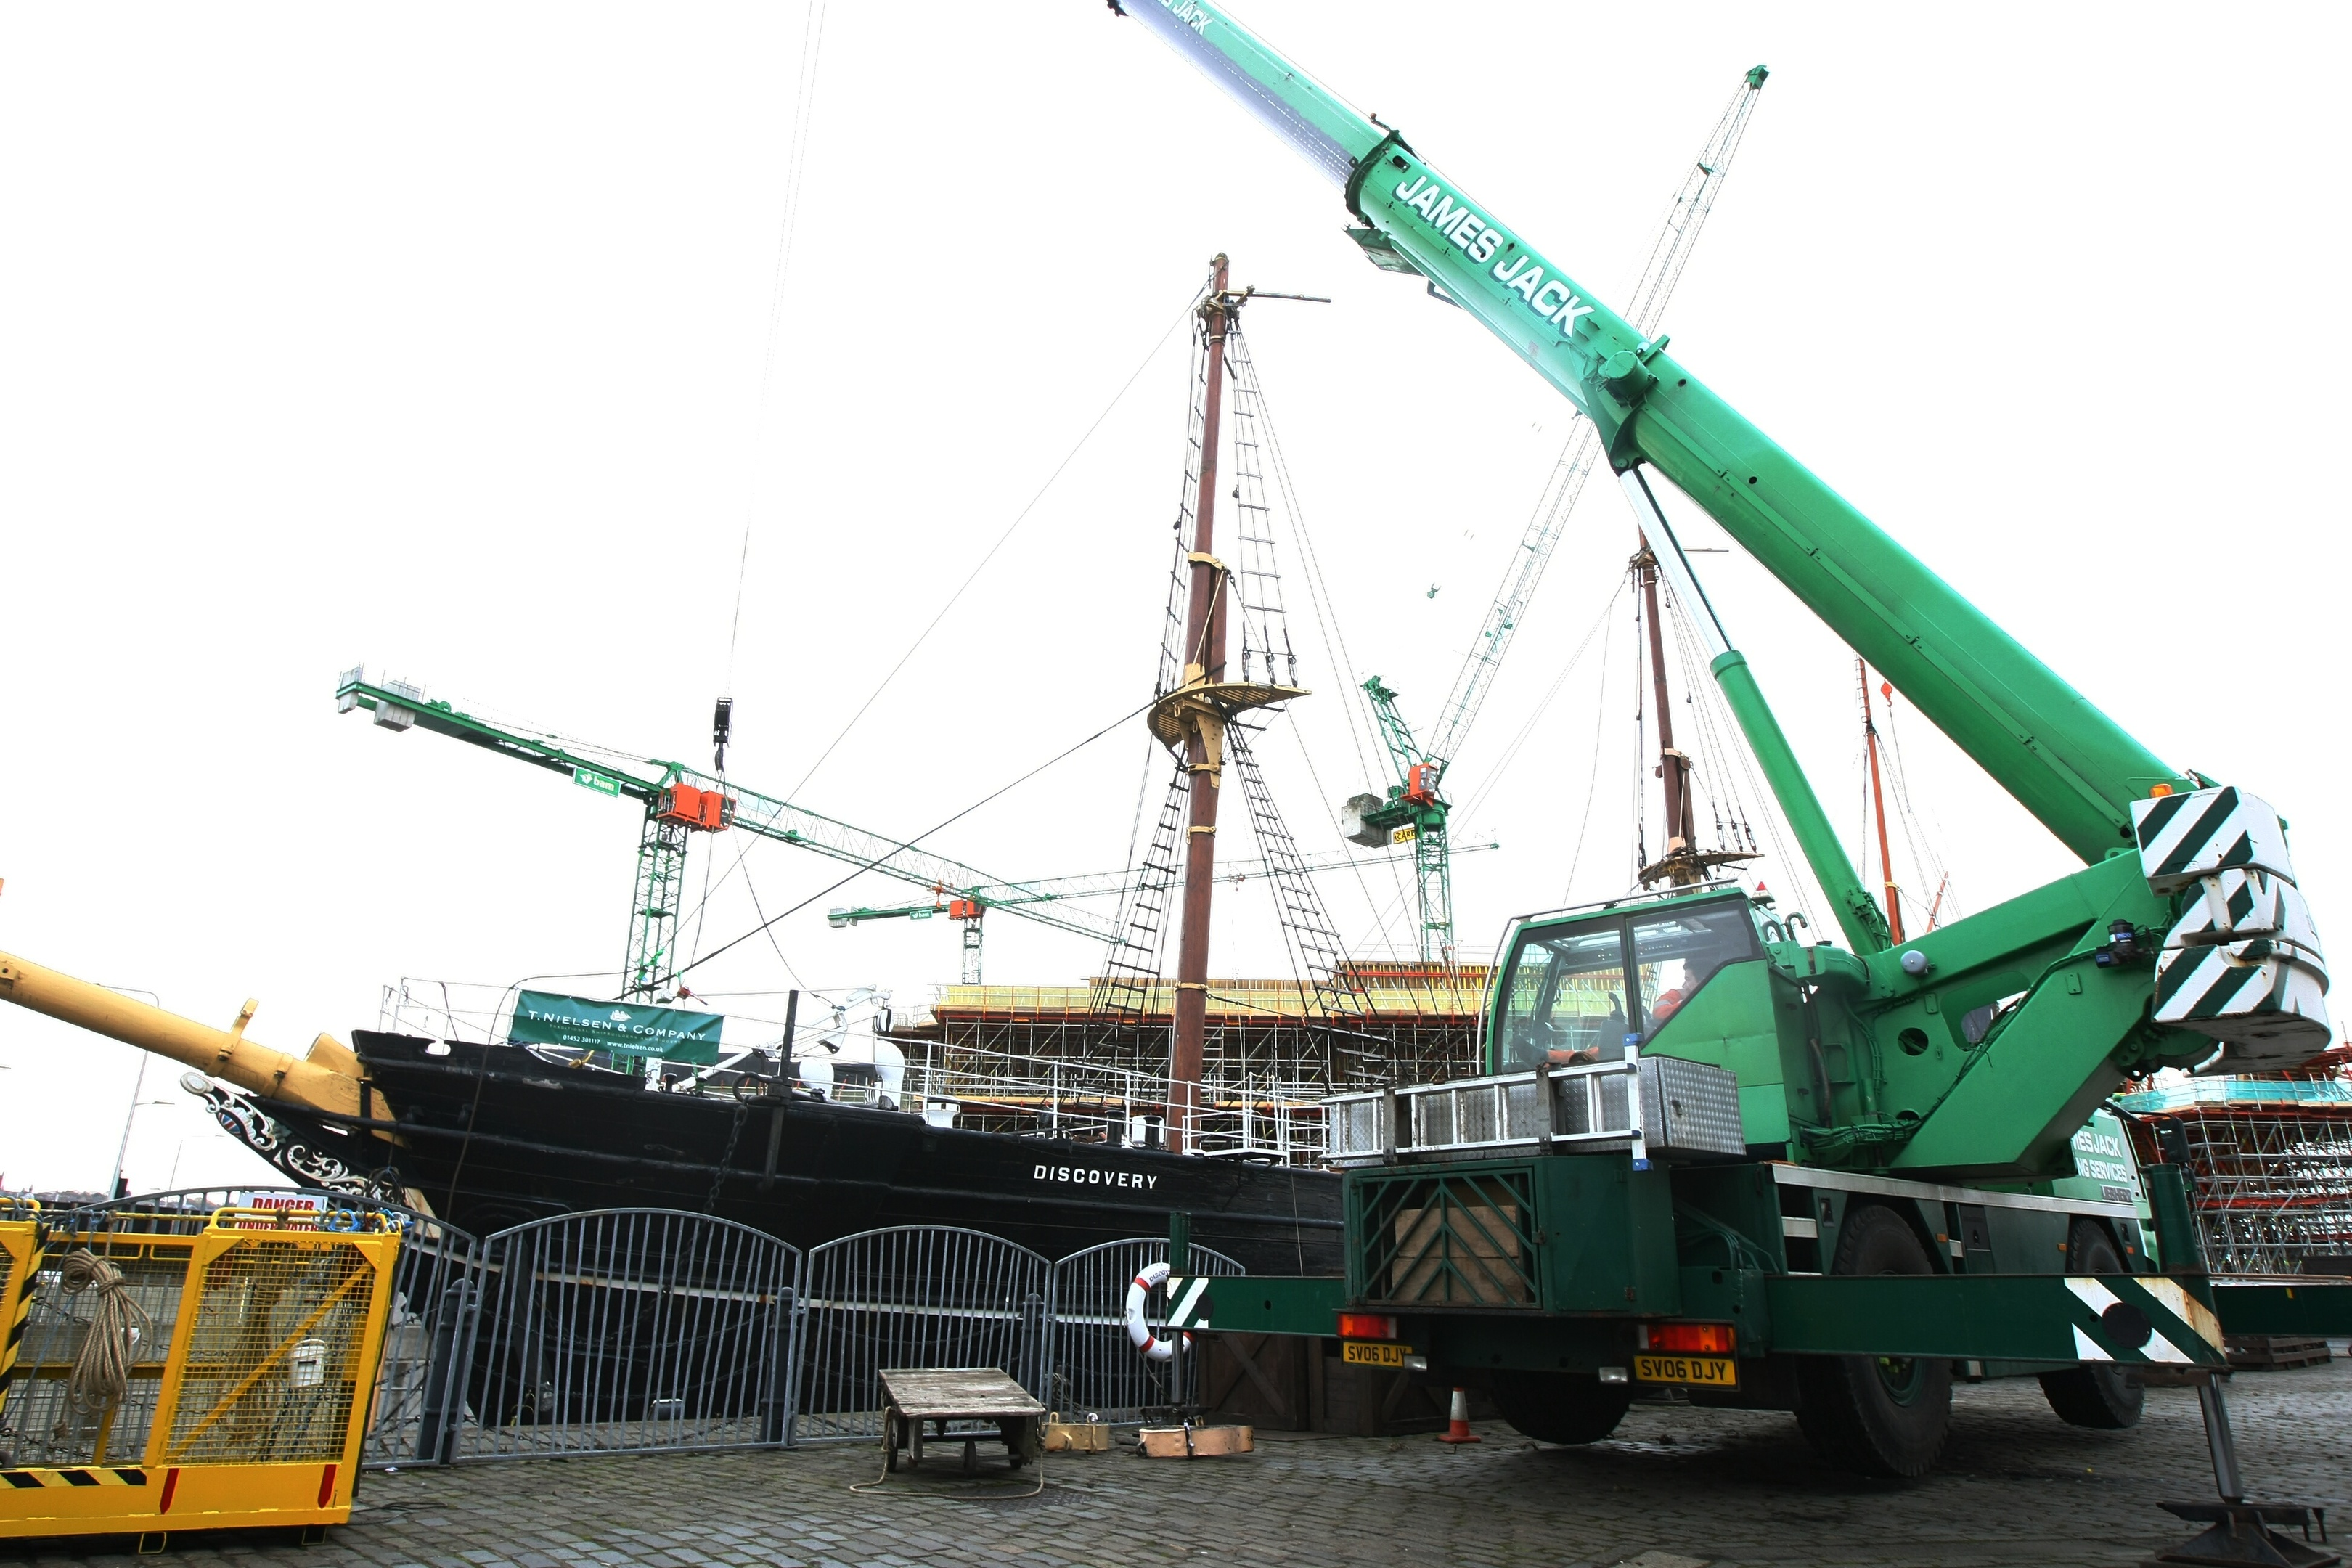 Discovery's masts being removed earlier in November.